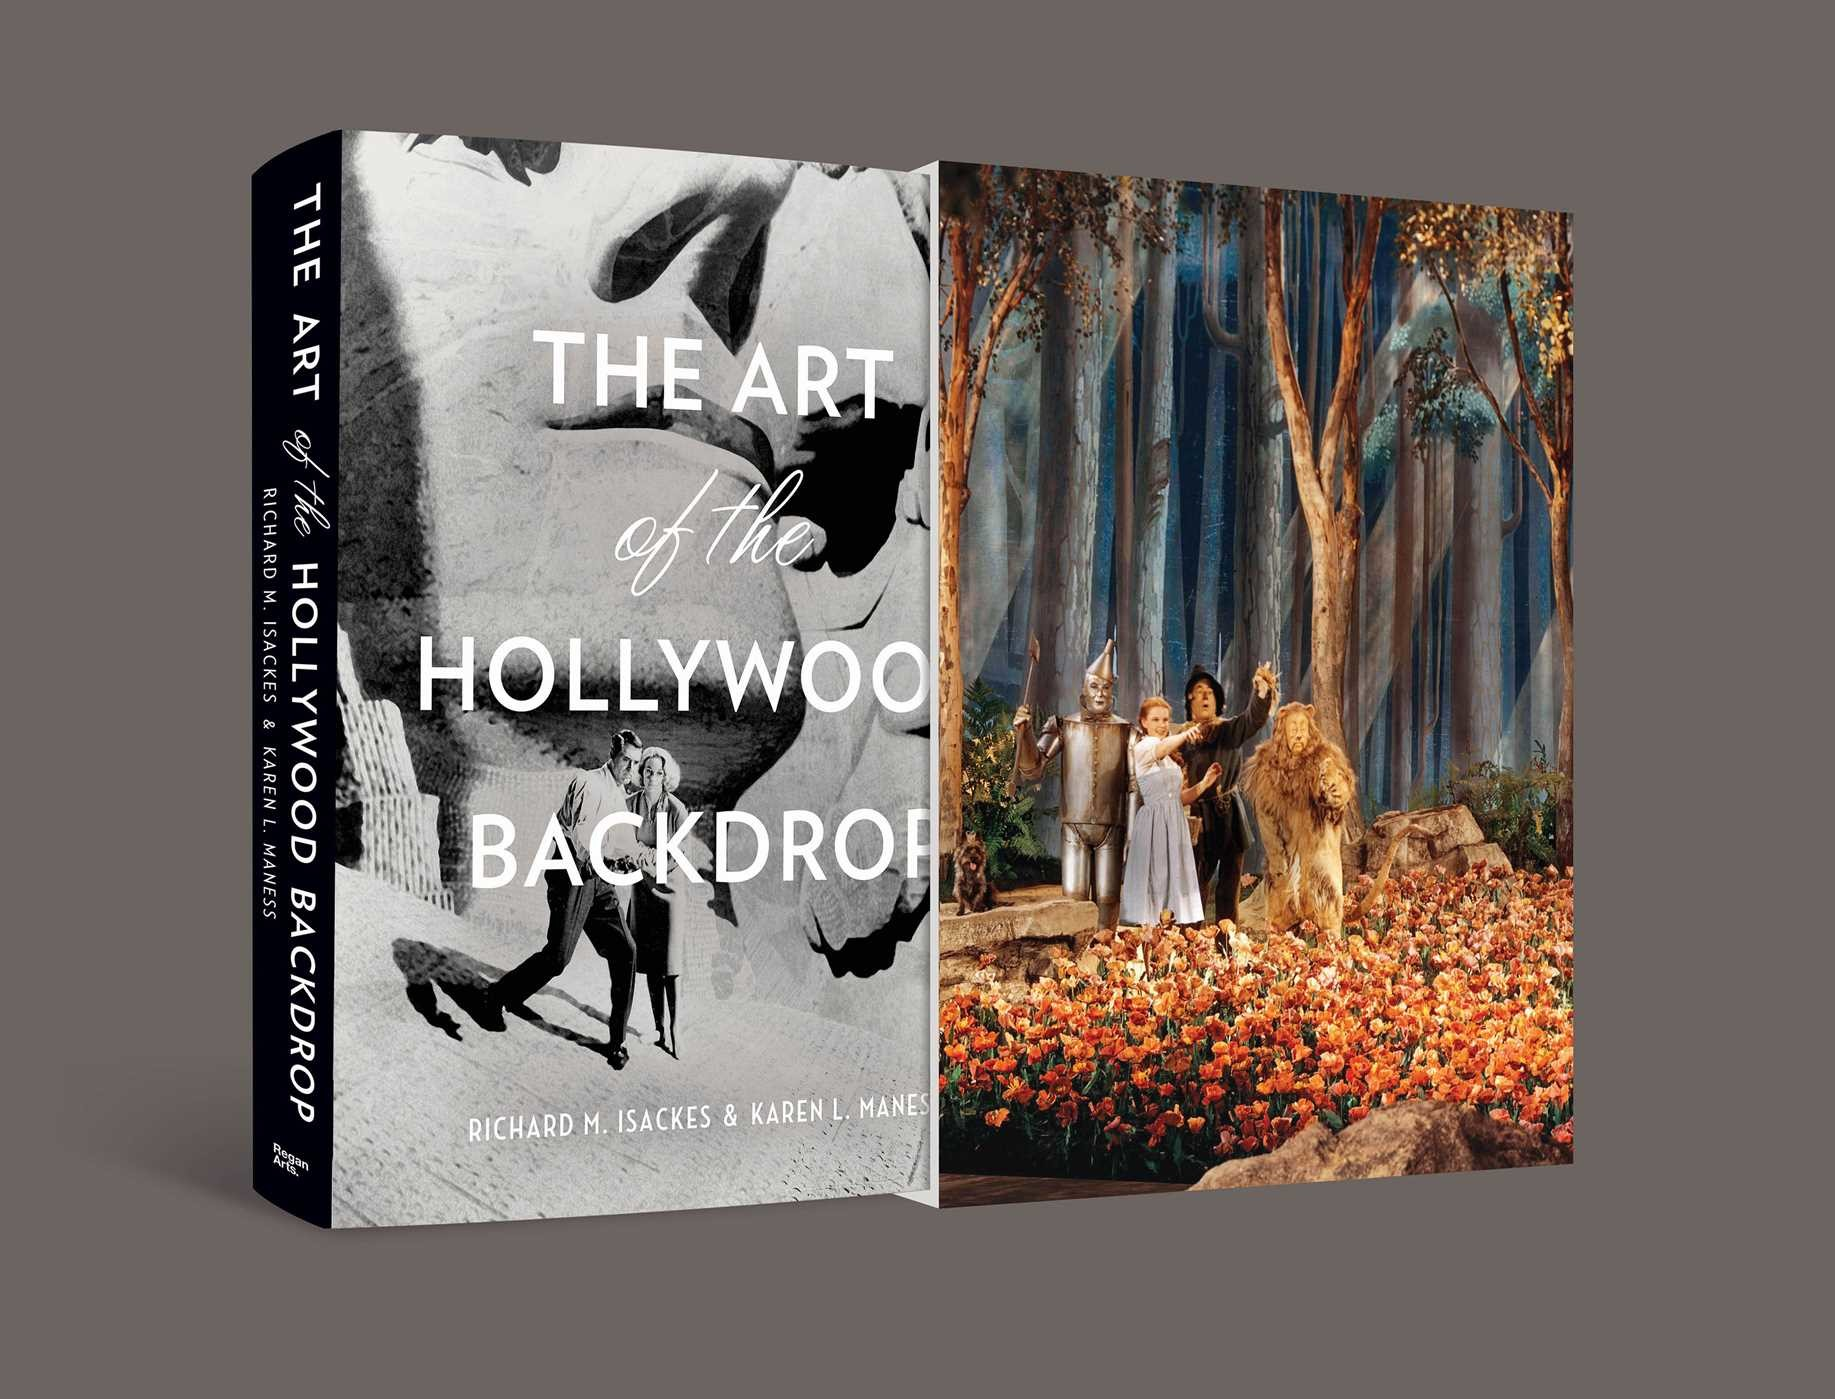 The art of the hollywood backdrop 9781941393086.in01